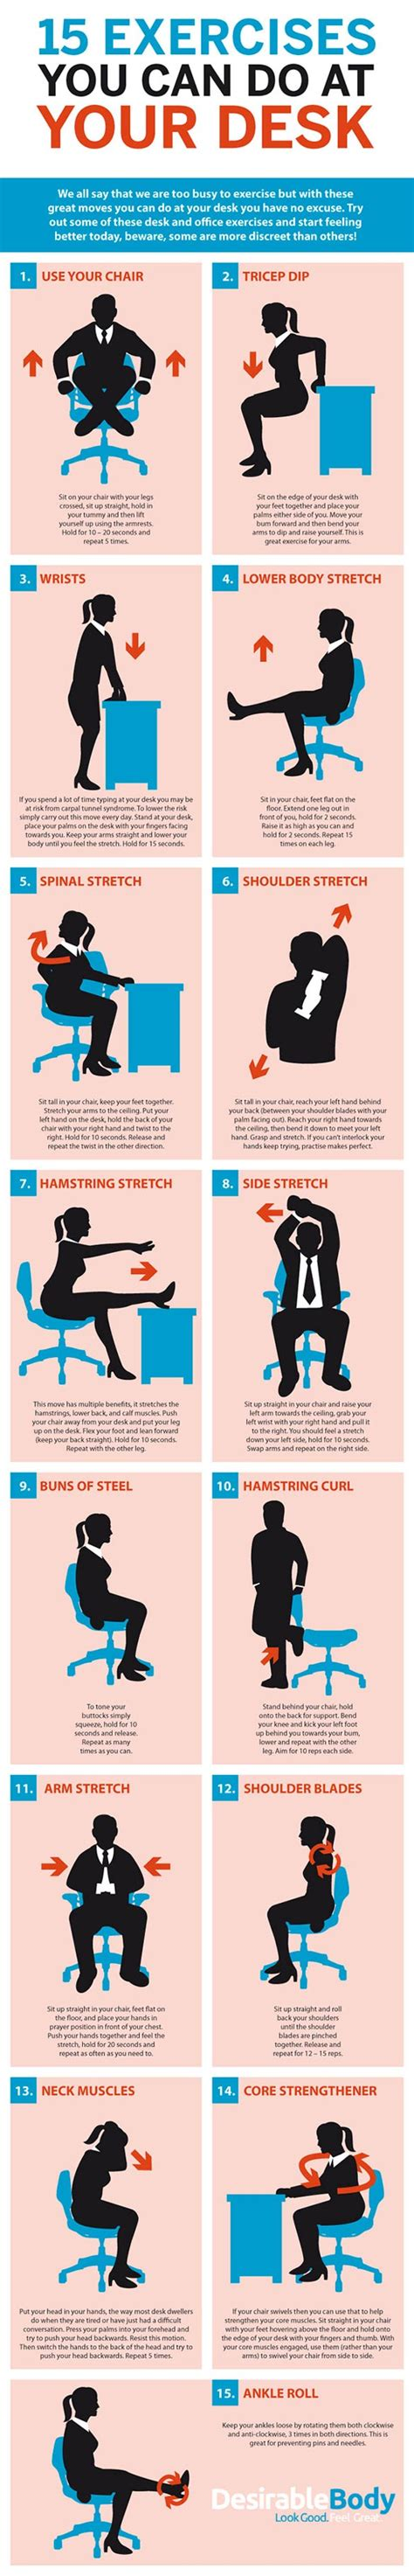 how to exercise at your desk 15 exercises you can do at your desk